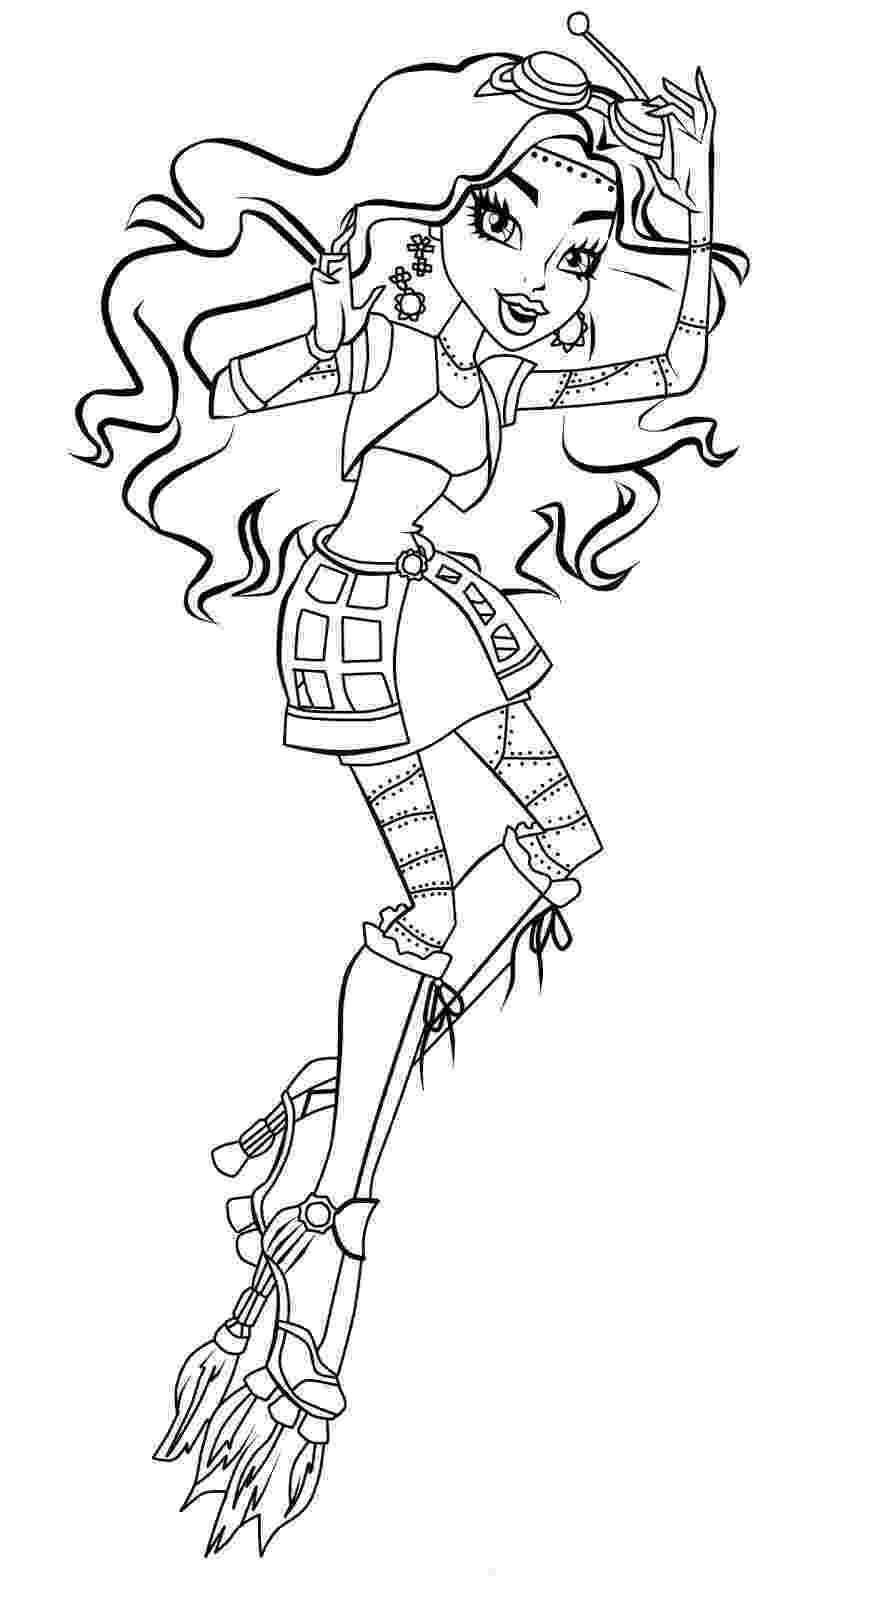 coloring pages for monster high all about monster high dolls ghoulia yelps free printable high for coloring monster pages